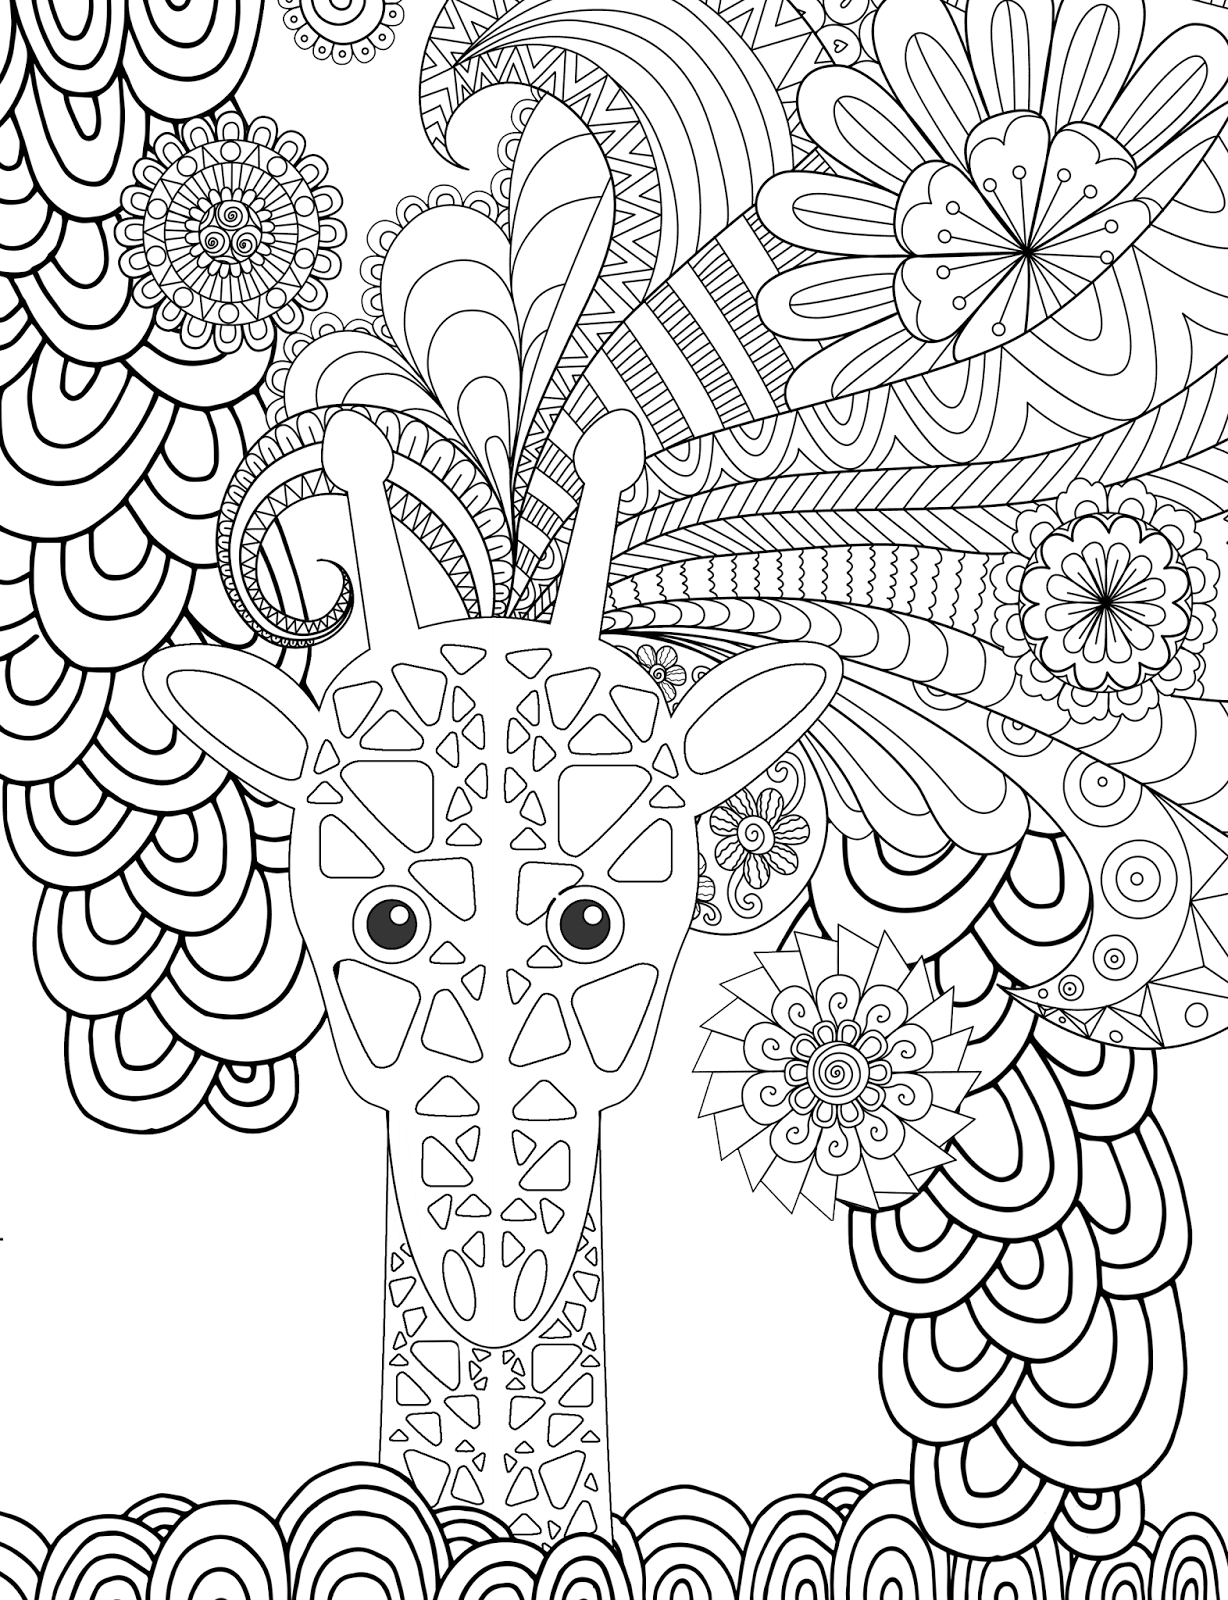 Here Is An Animal Adult Coloring Page To Print For Free